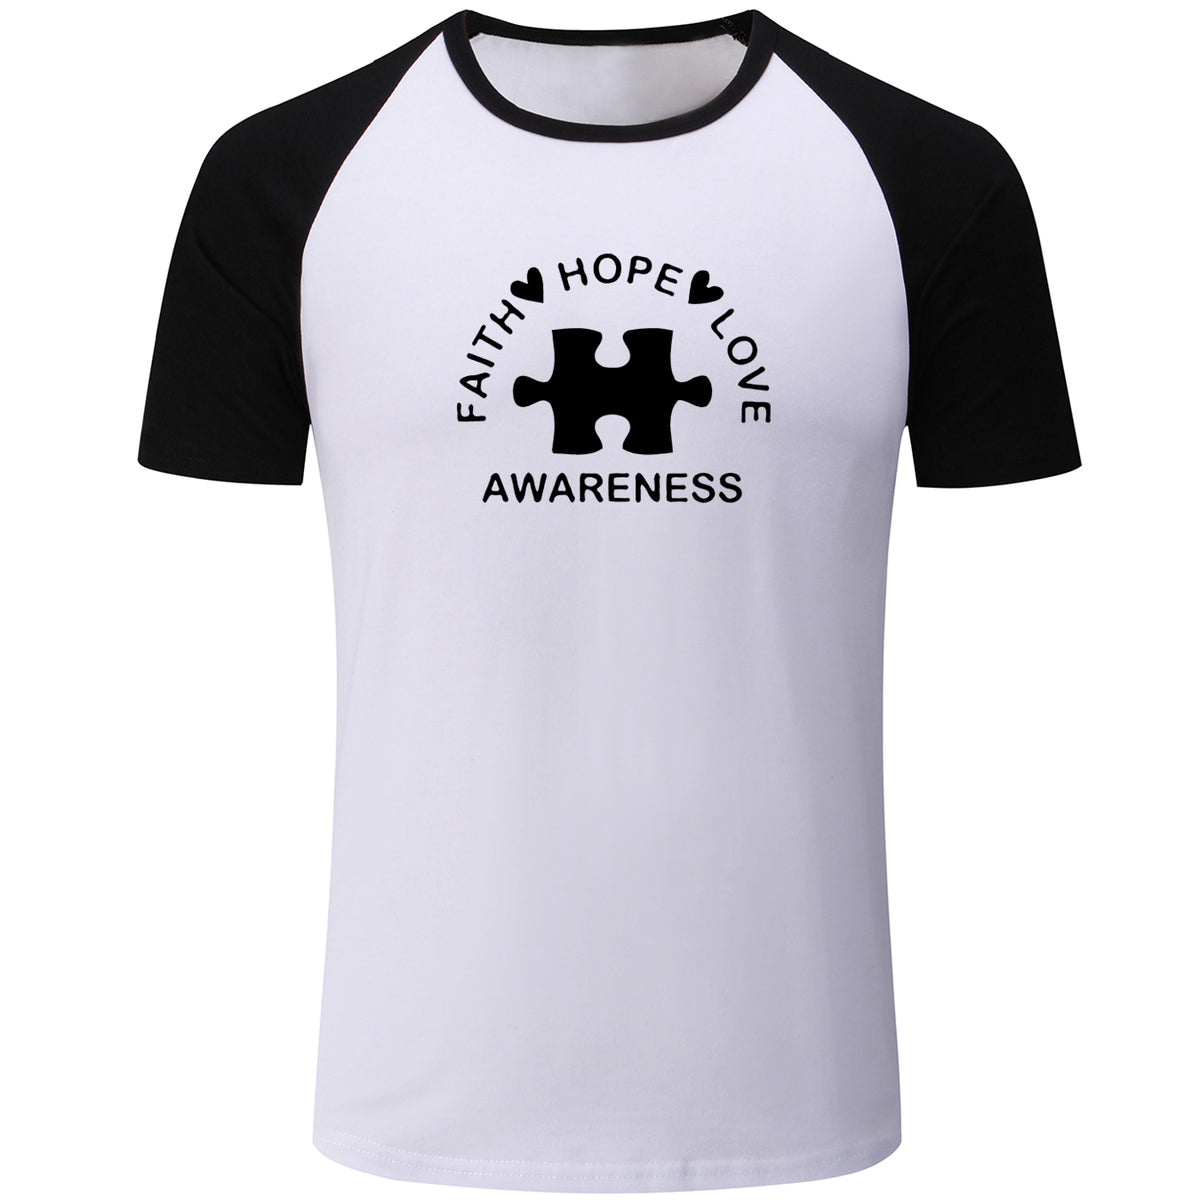 Unisex Faith Hope Love Awareness